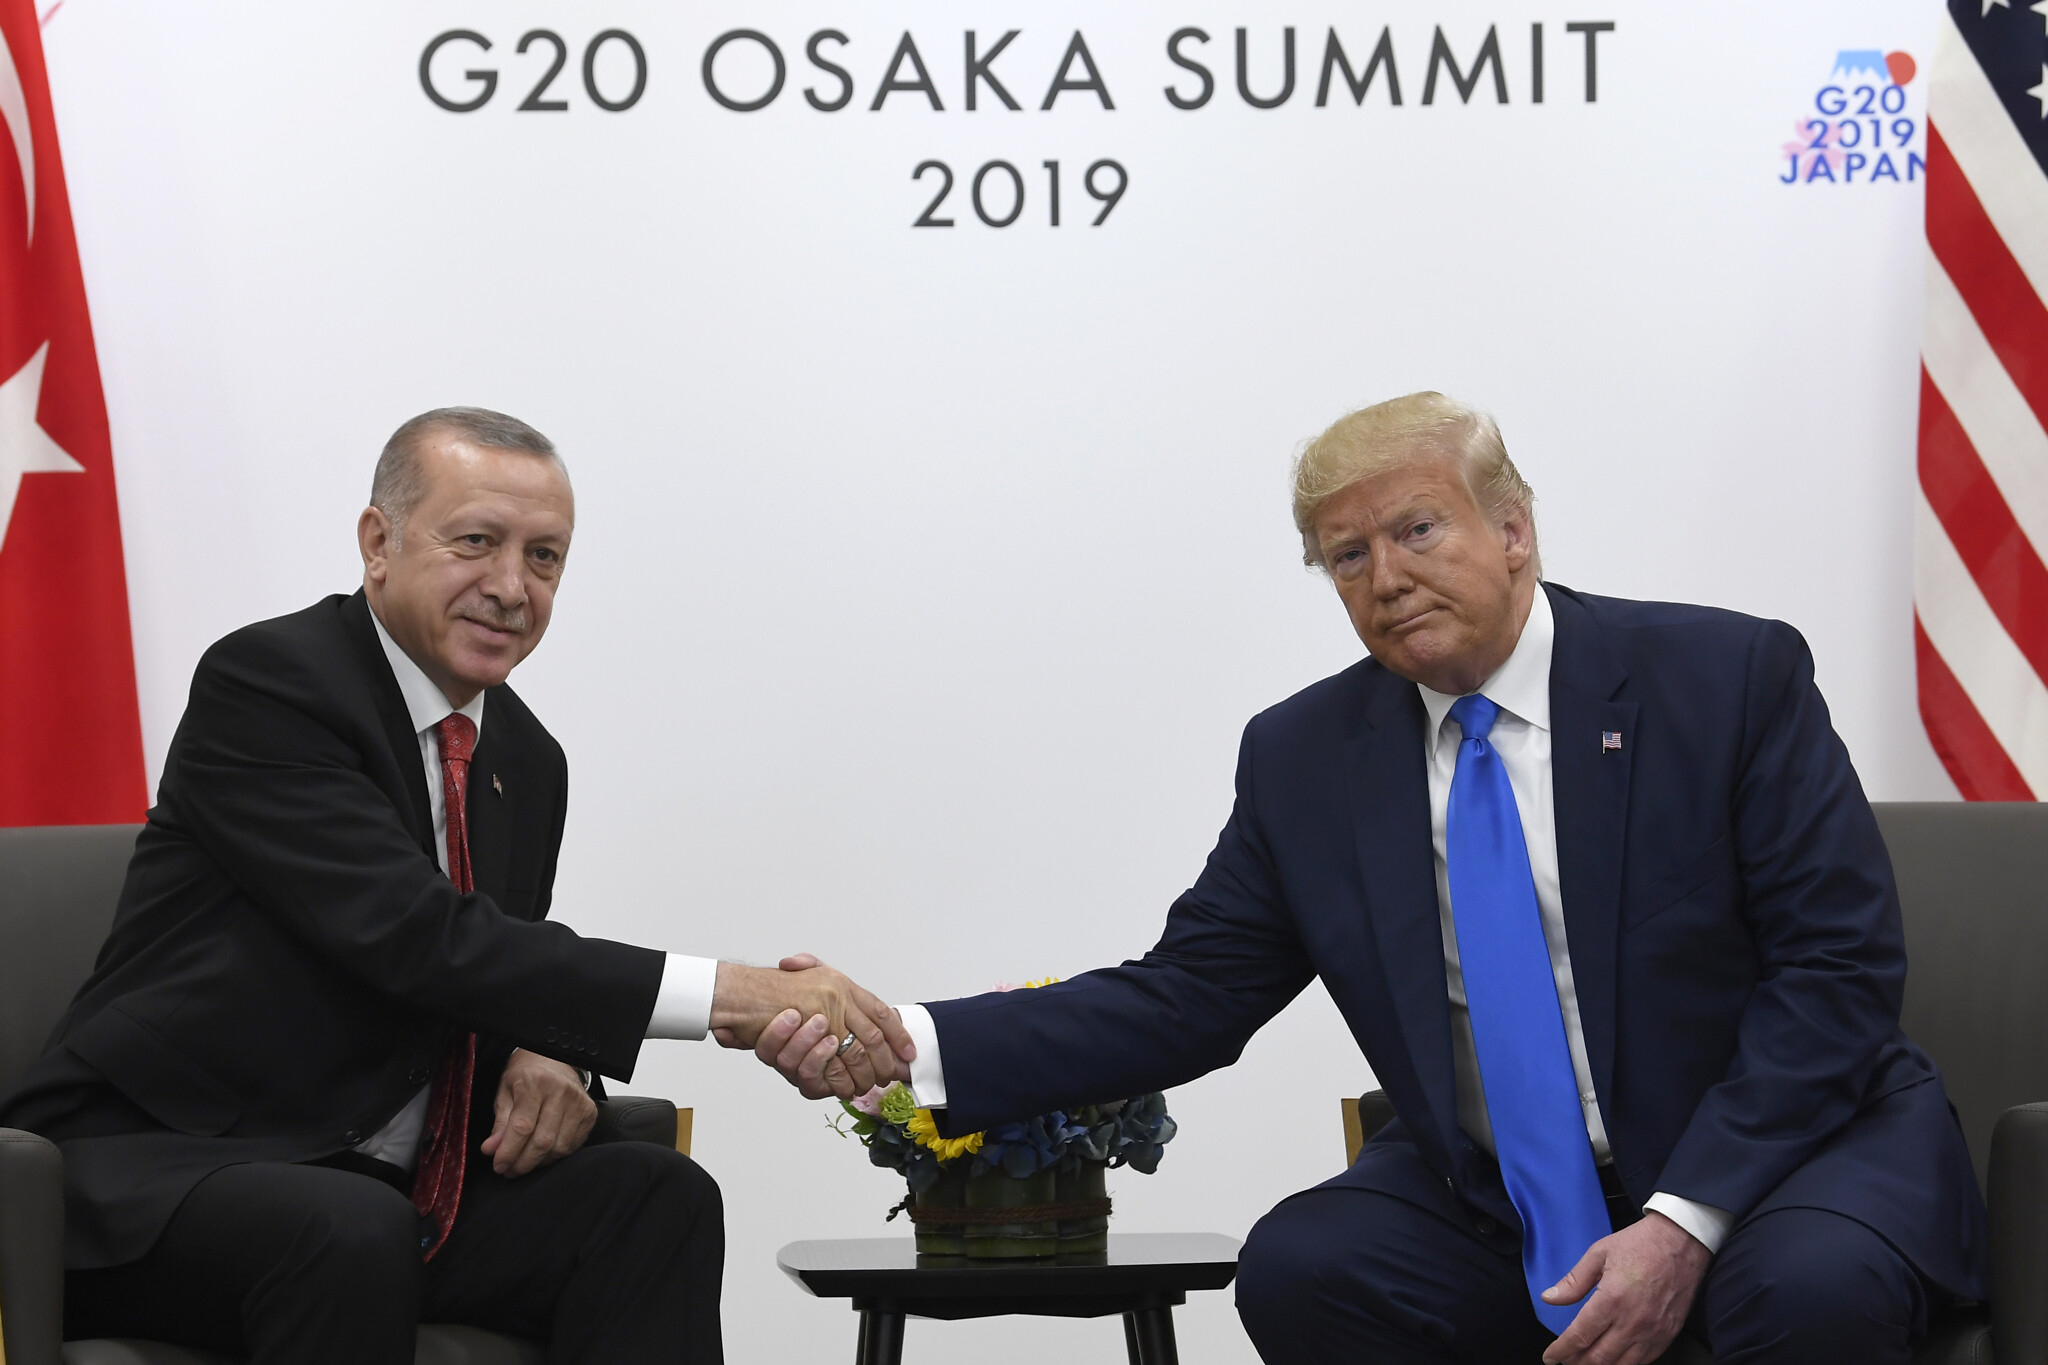 Trump Meets Turkish President Erdogan, Stresses Common Ground on ISIS, Trade